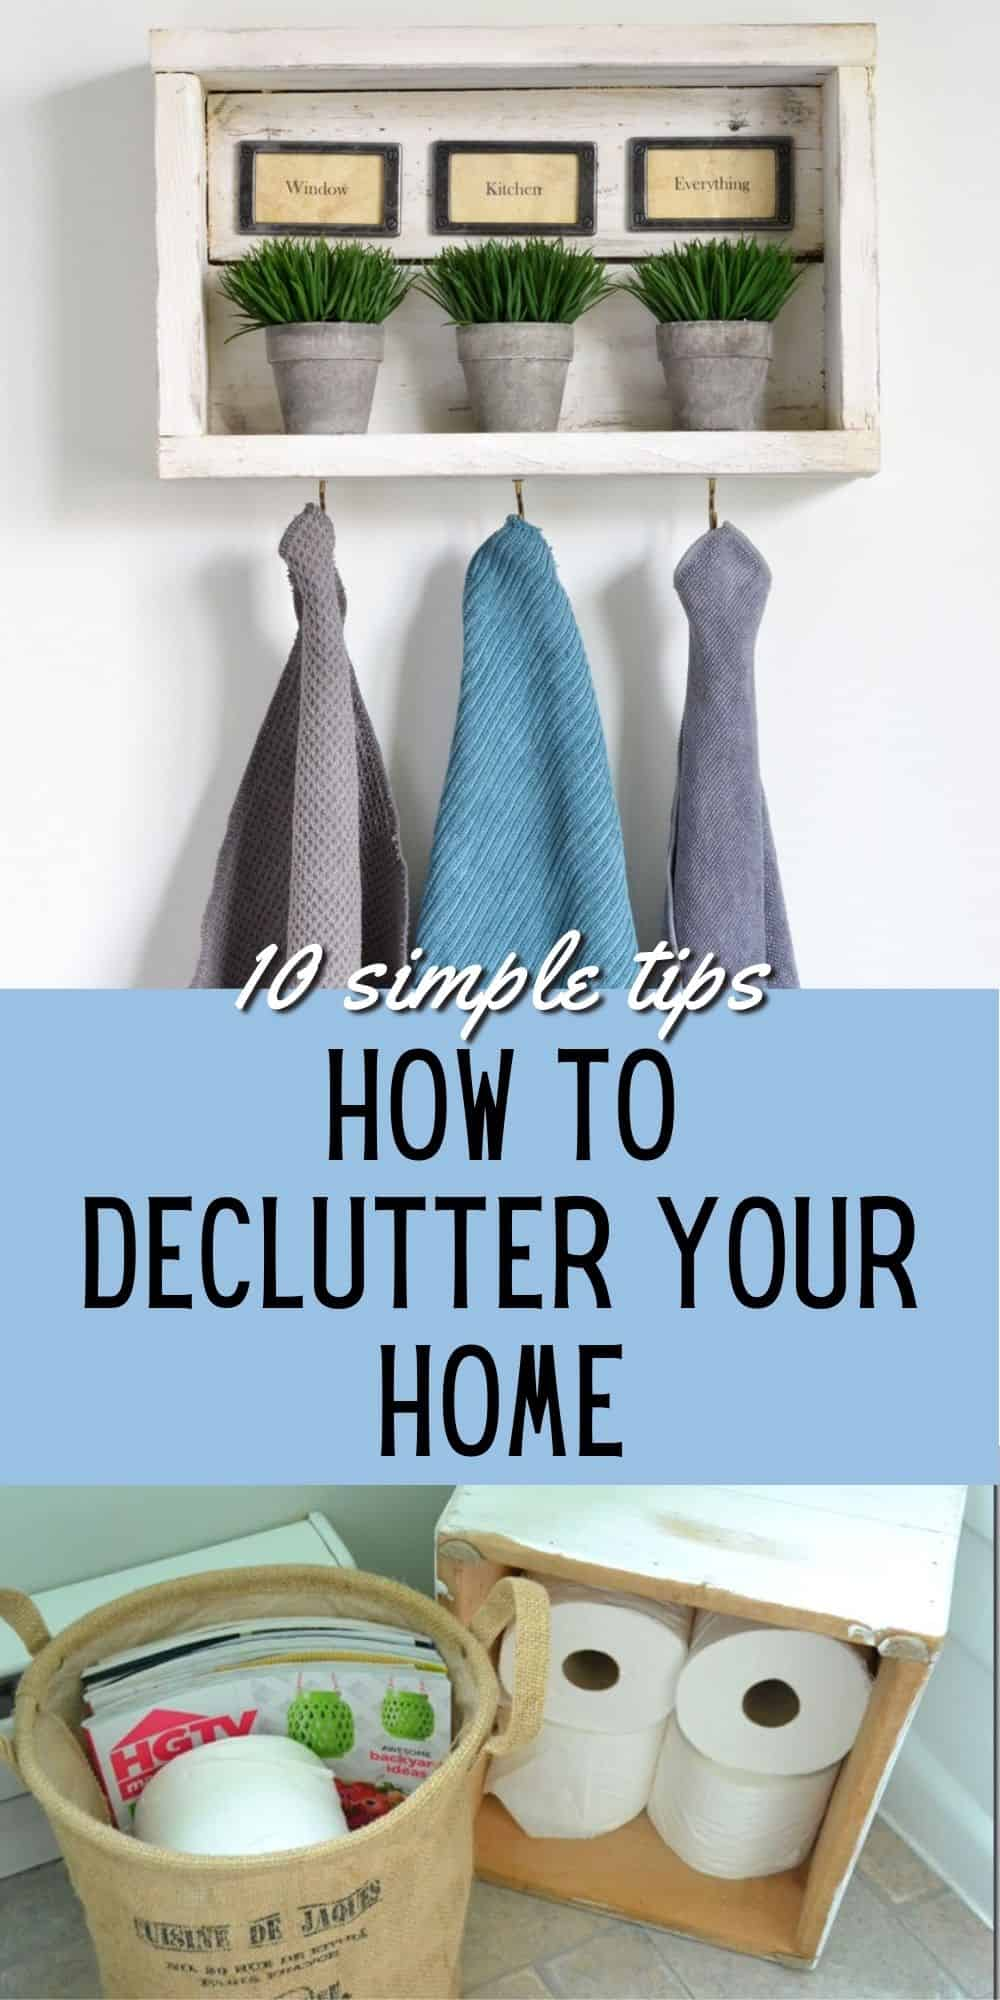 How to Declutter Your Home with Success - 10 Simple Tips